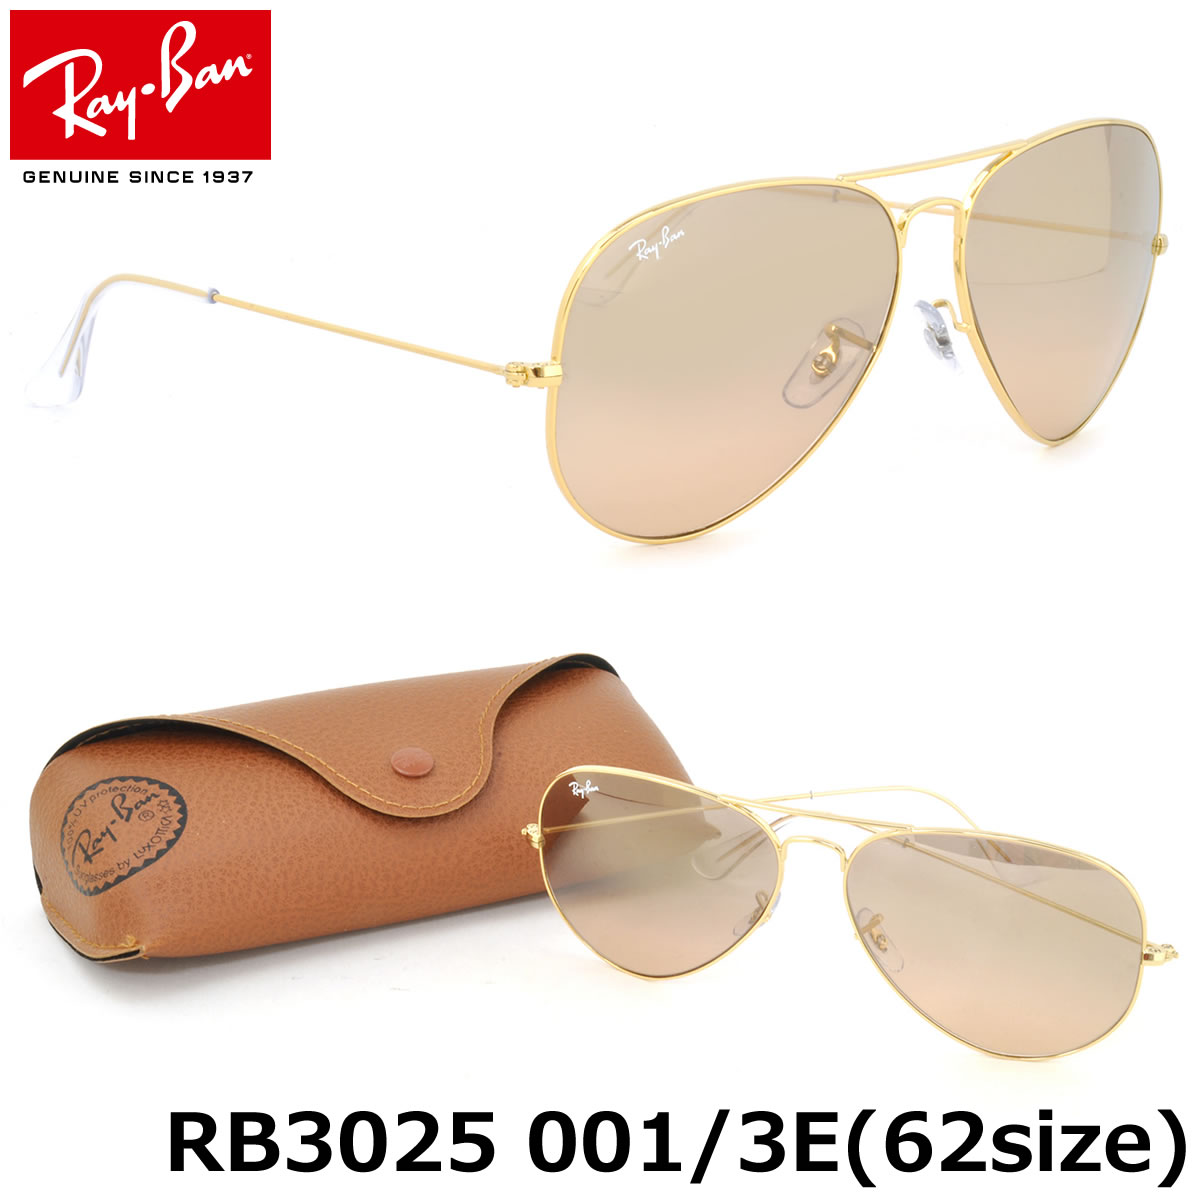 63108a8563 Ray-Ban Sunglasses RB3025 001 3E 62size(LARGE) ORIGINAL AVIATOR GENUINE NEW rayban  ray ban